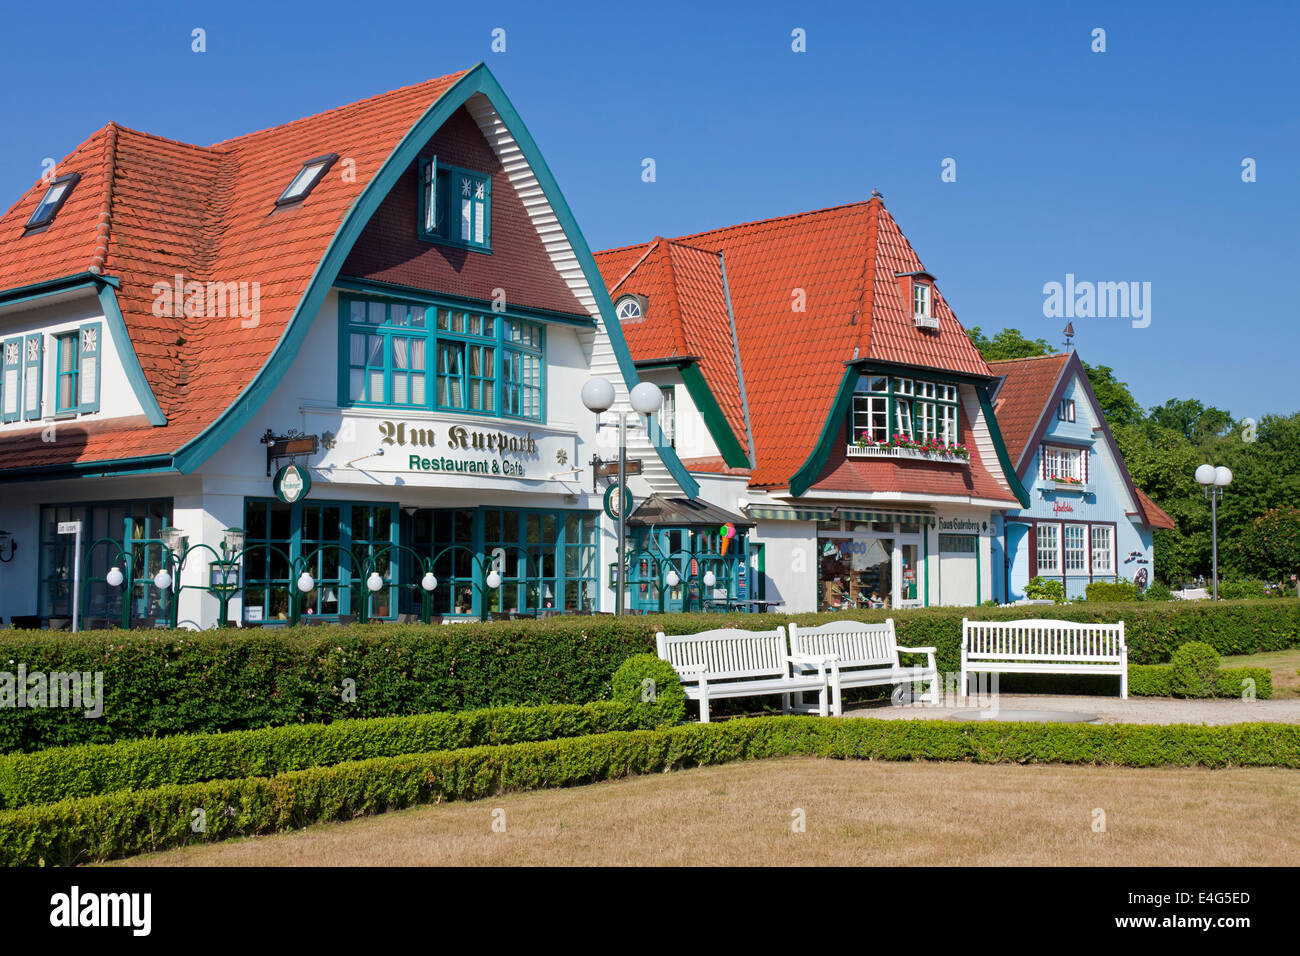 Restaurant and traditional houses at Boltenhagen, seaside resort along the Baltic Sea, Mecklenburg-Vorpommern, Germany - Stock Image